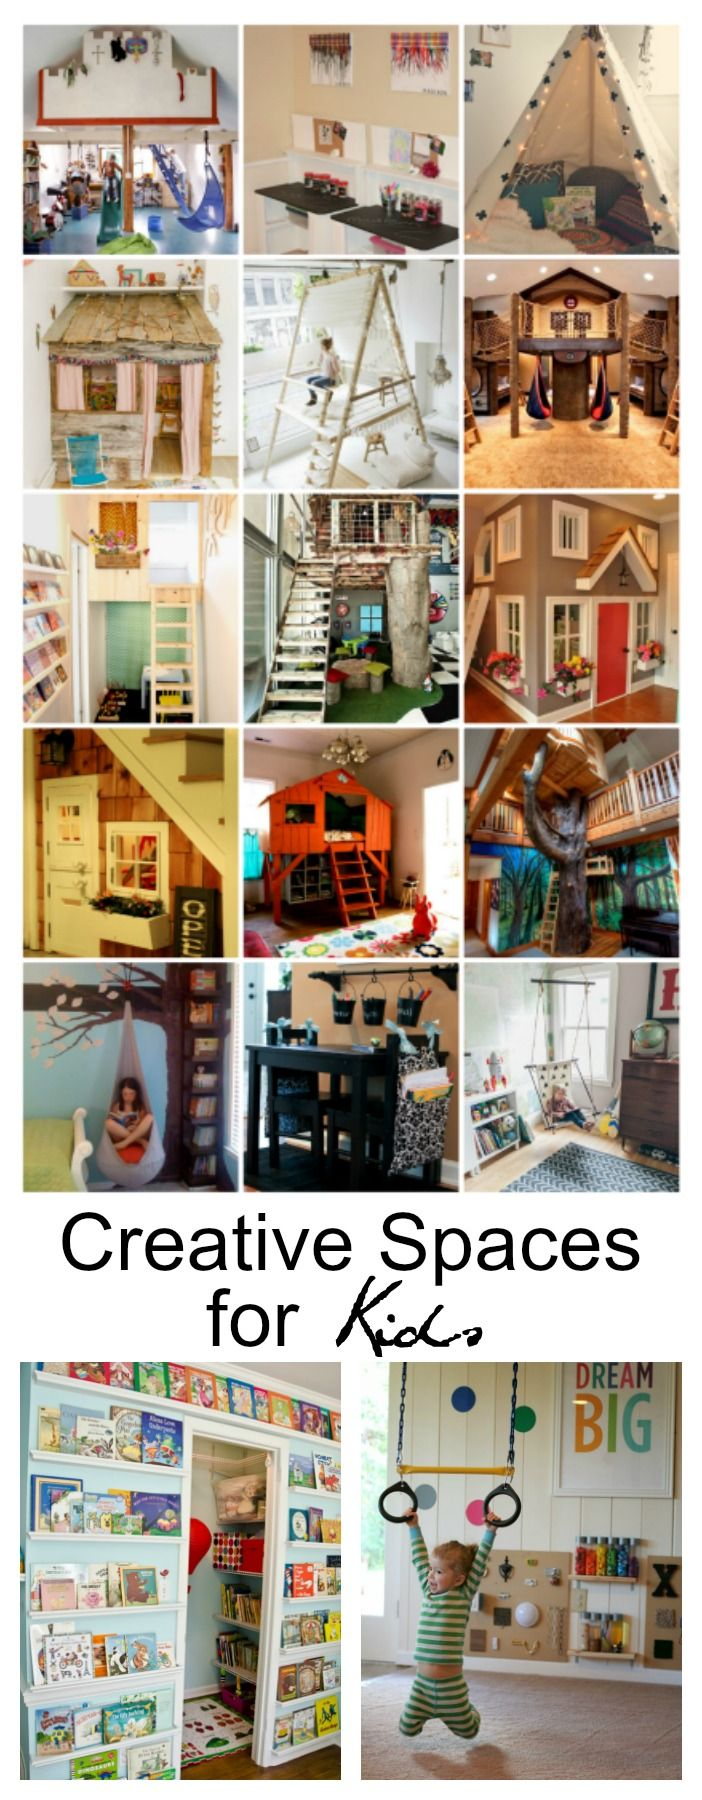 What's your idea of an awesome Creative Space for your kids? Sharing some amazing and imaginative Creative Spaces for Kids below that will leave you wishing you could go back to the simple days of playing and dreaming....now wouldn't that be nice?!